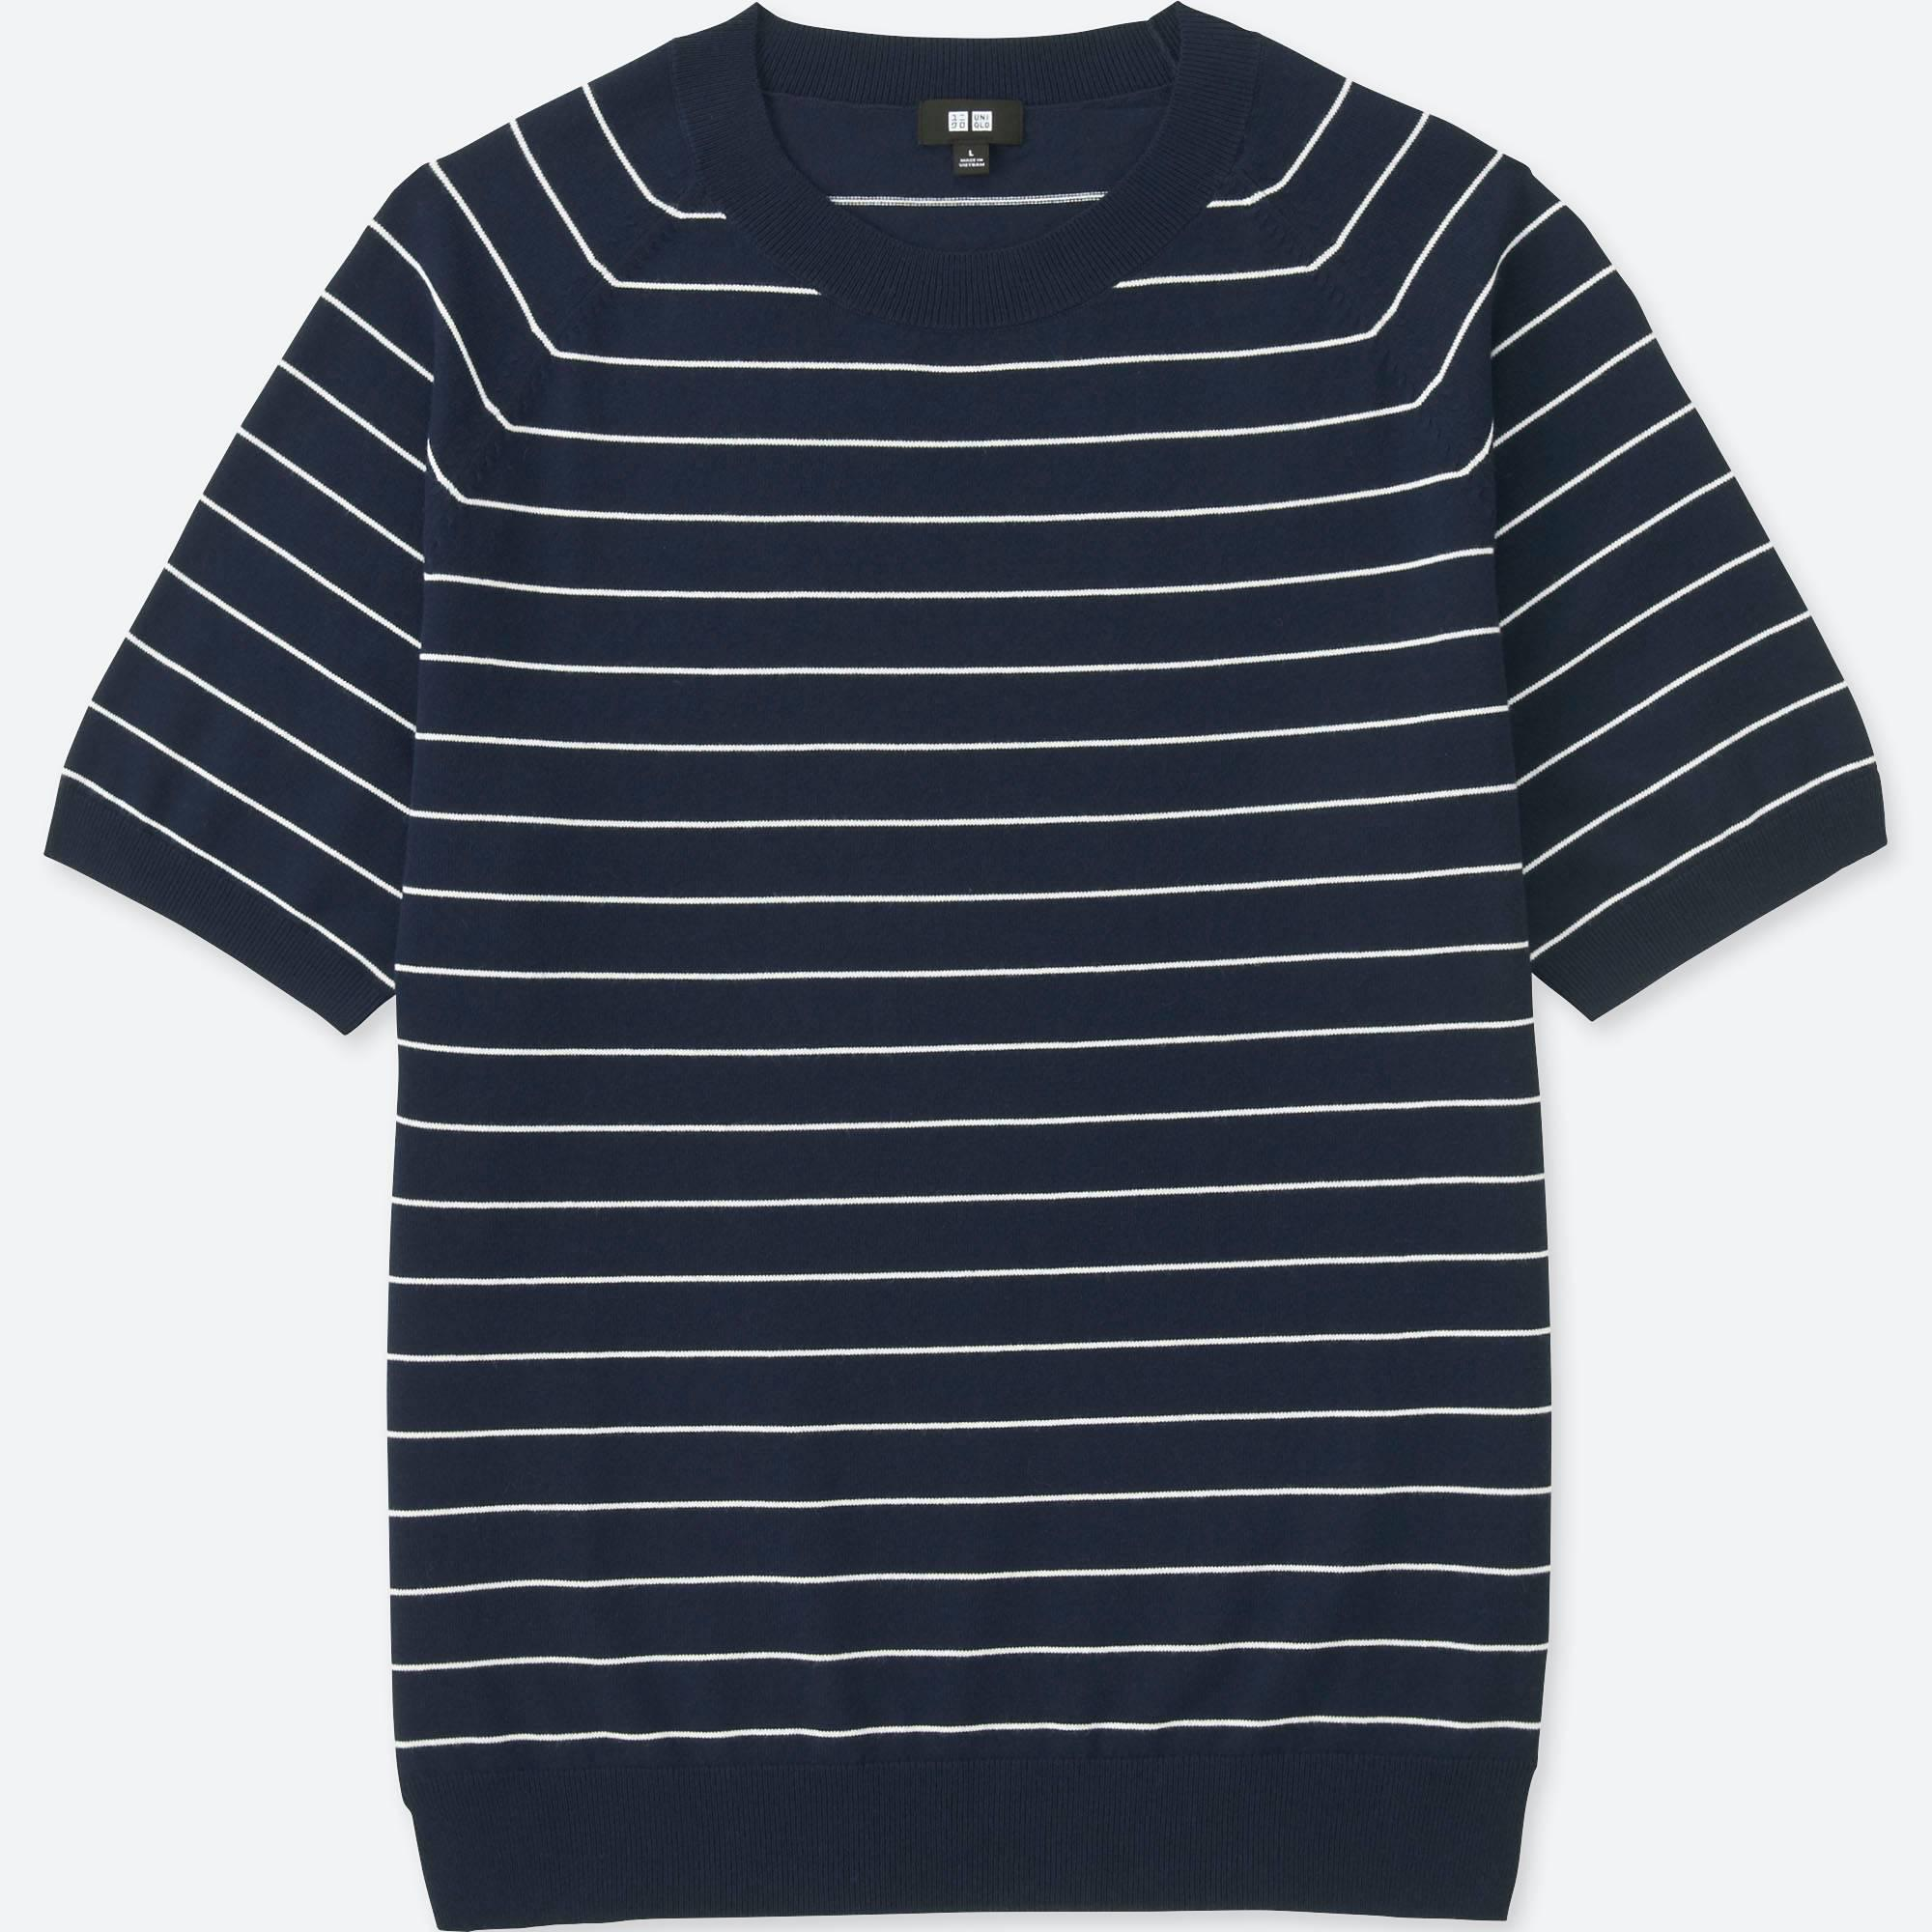 Lyst - Uniqlo Men Washable Striped Crewneck Short-sleeve Sweater in ... 2dcf5ebed